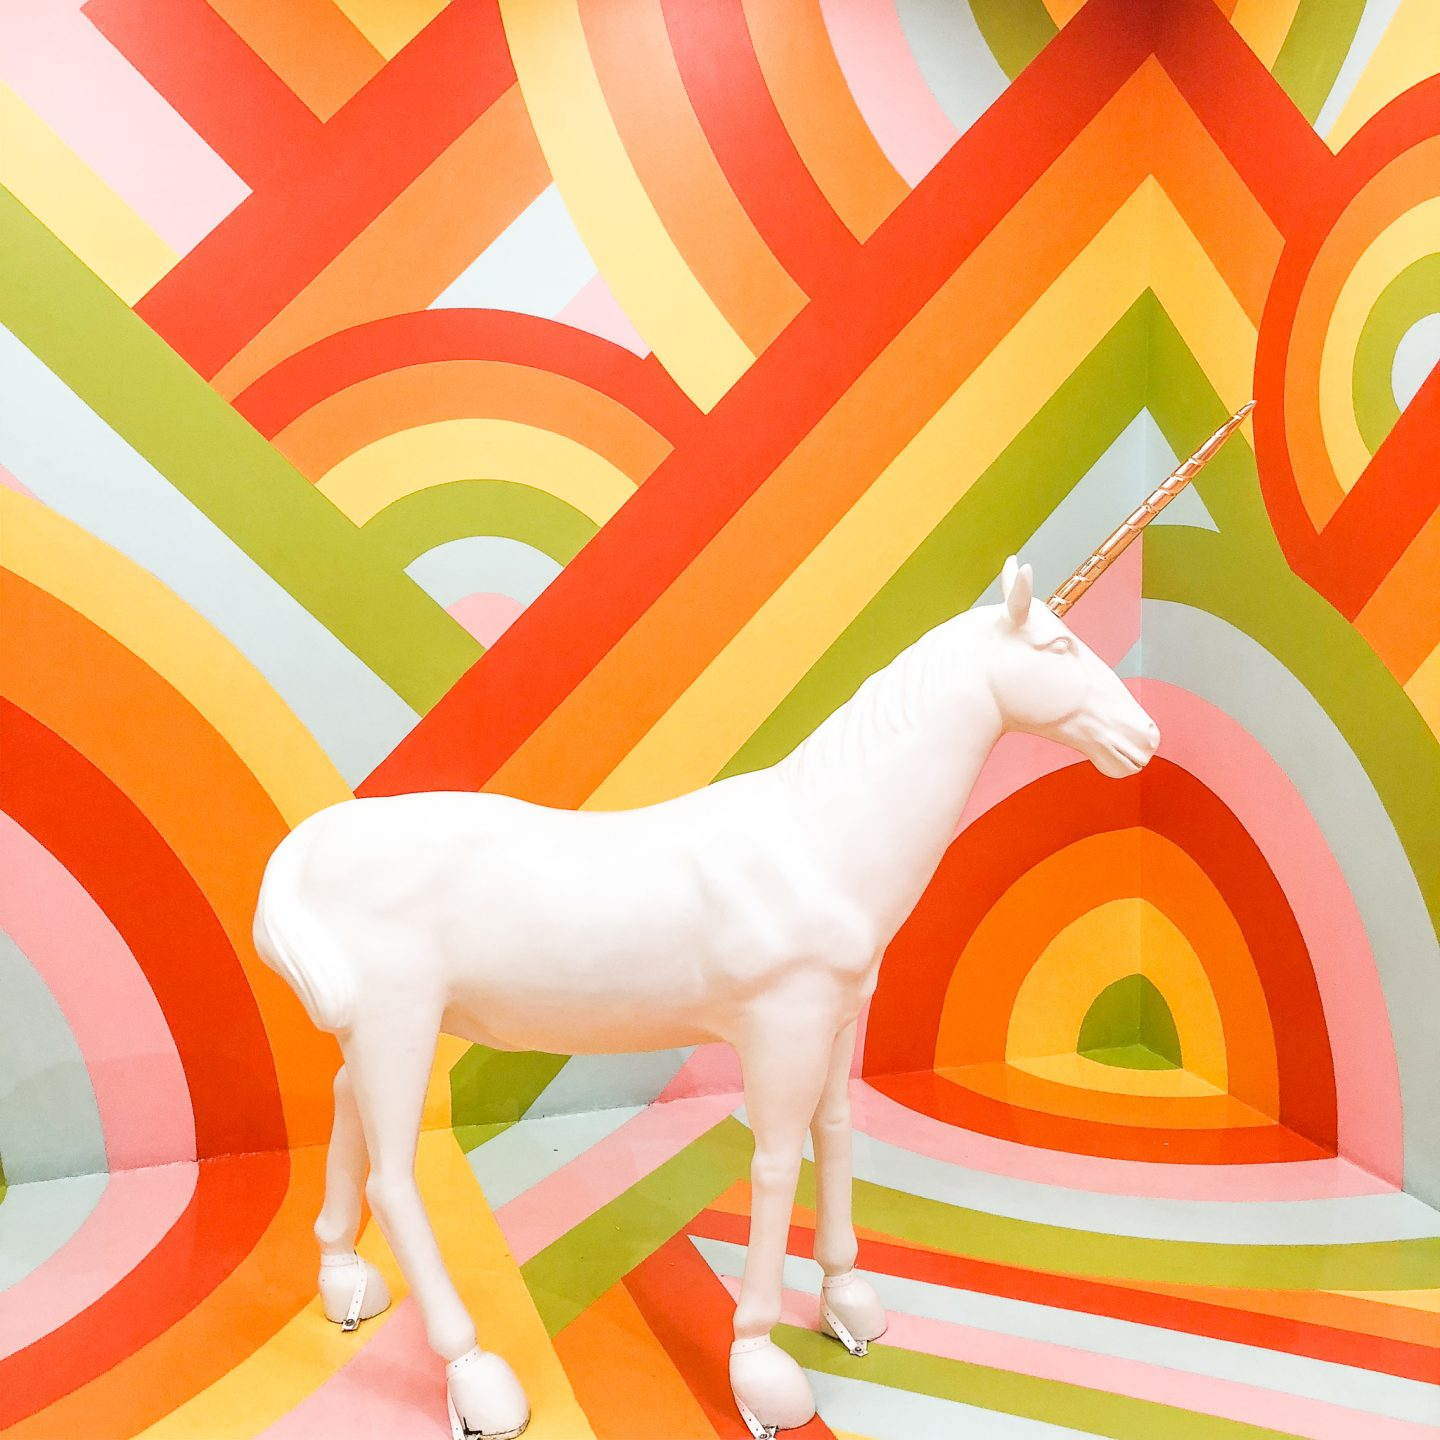 museum of ice cream unicorn